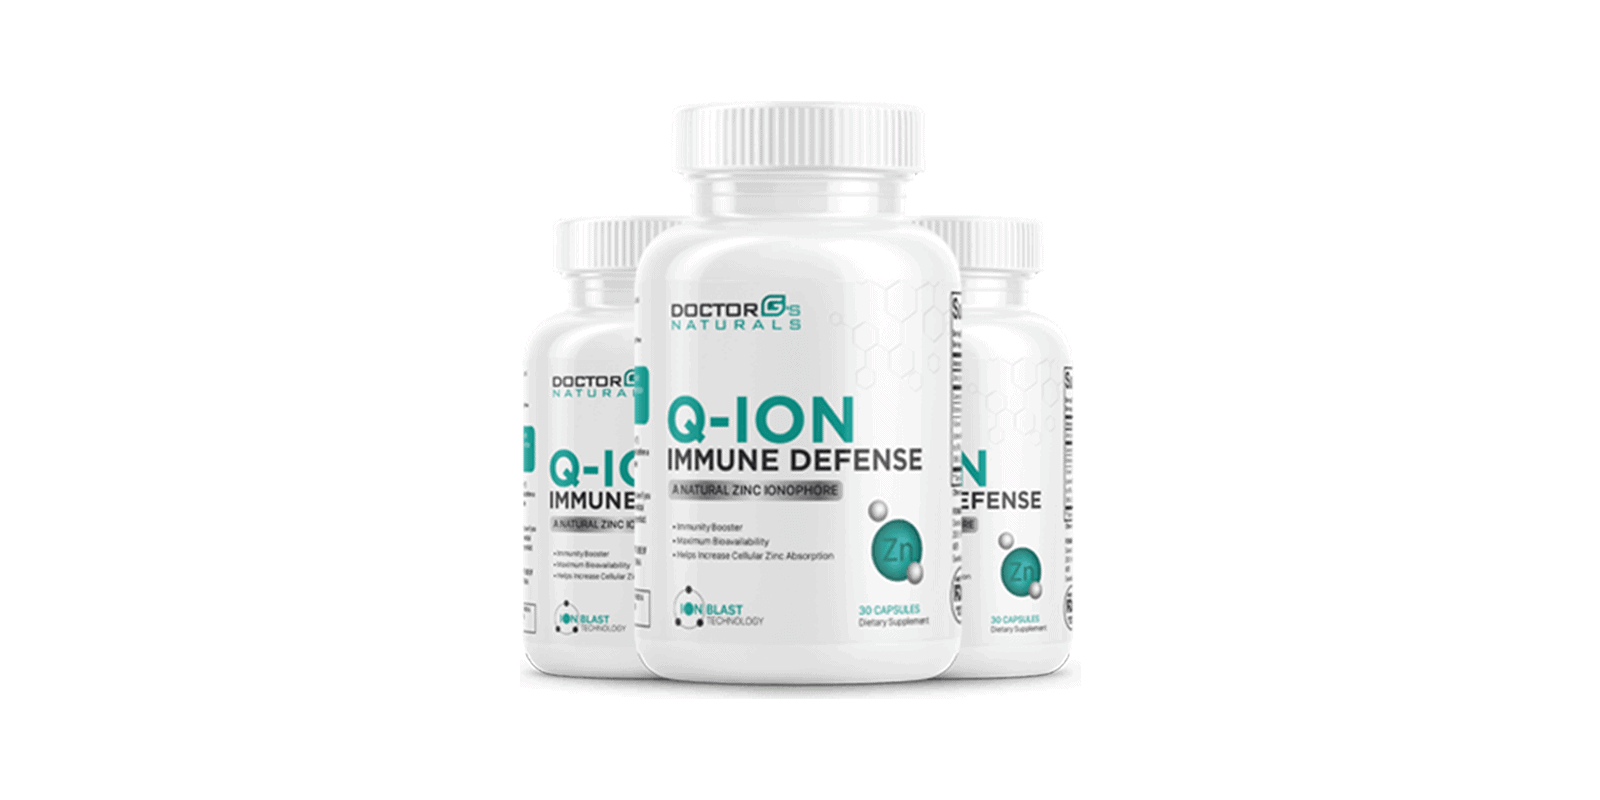 Q-ION Immune Defence reviews